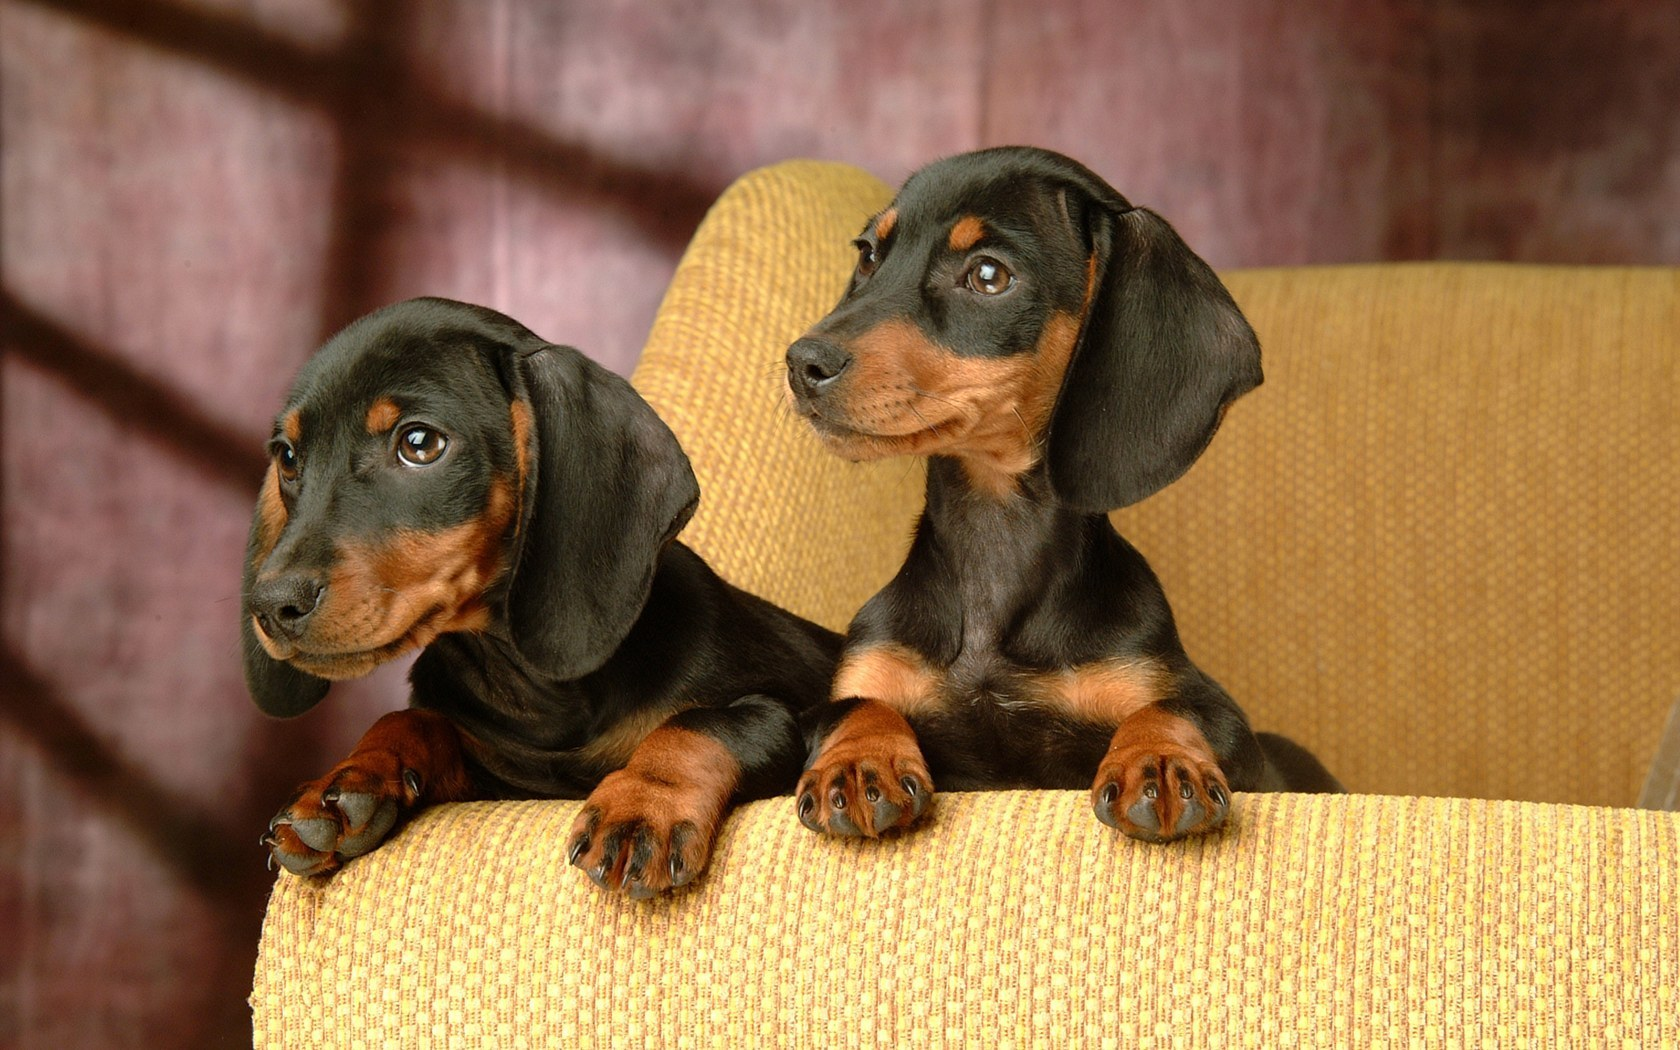 Where did Dachshunds originate?